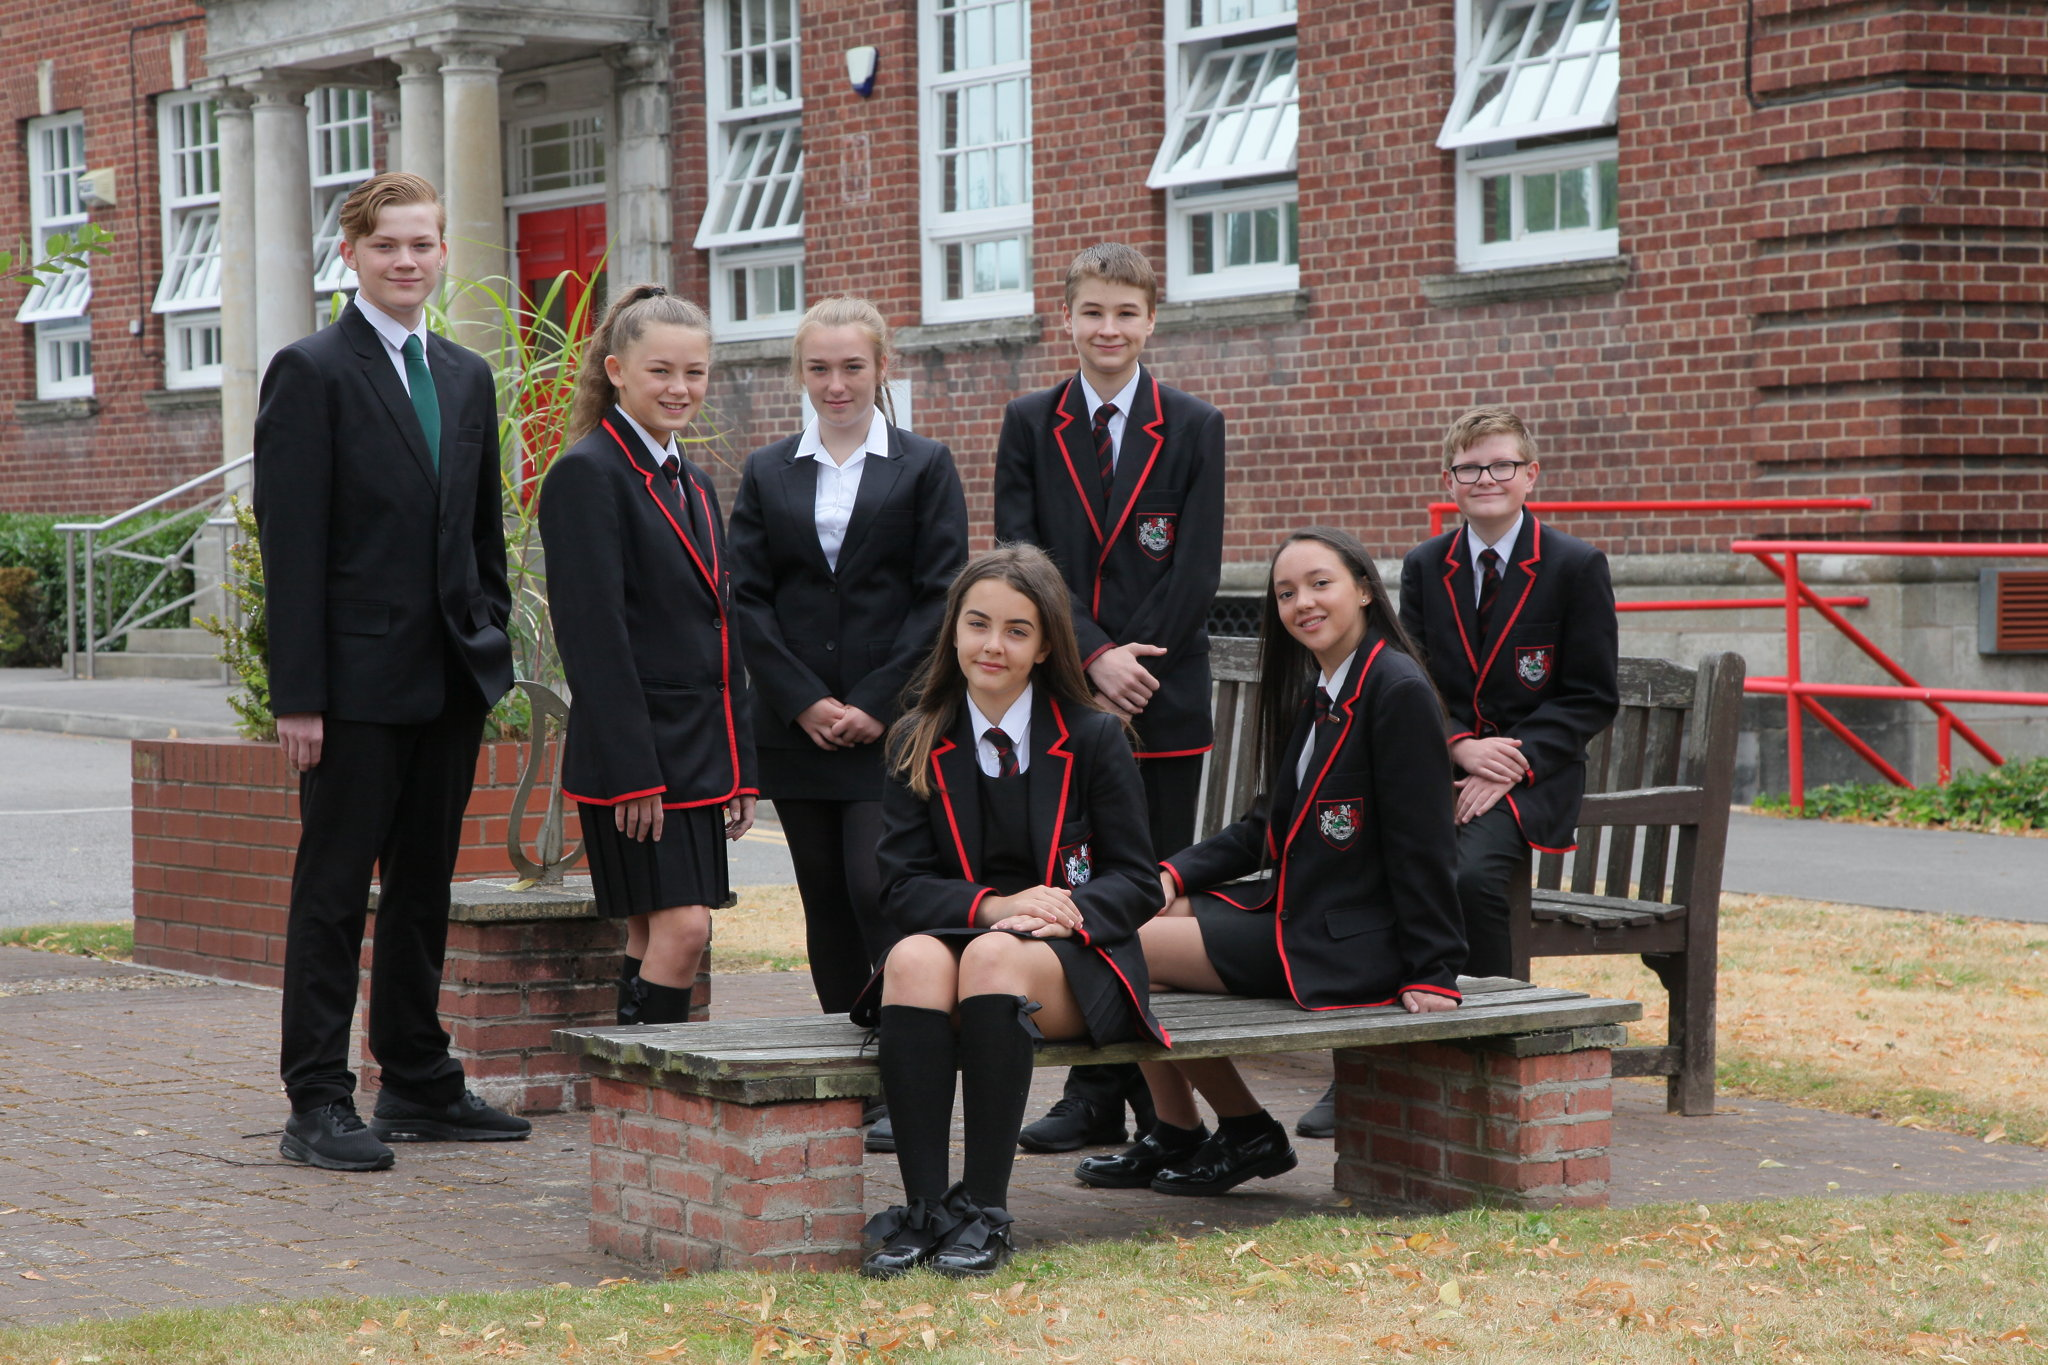 Uniform | The Birkenhead Park School